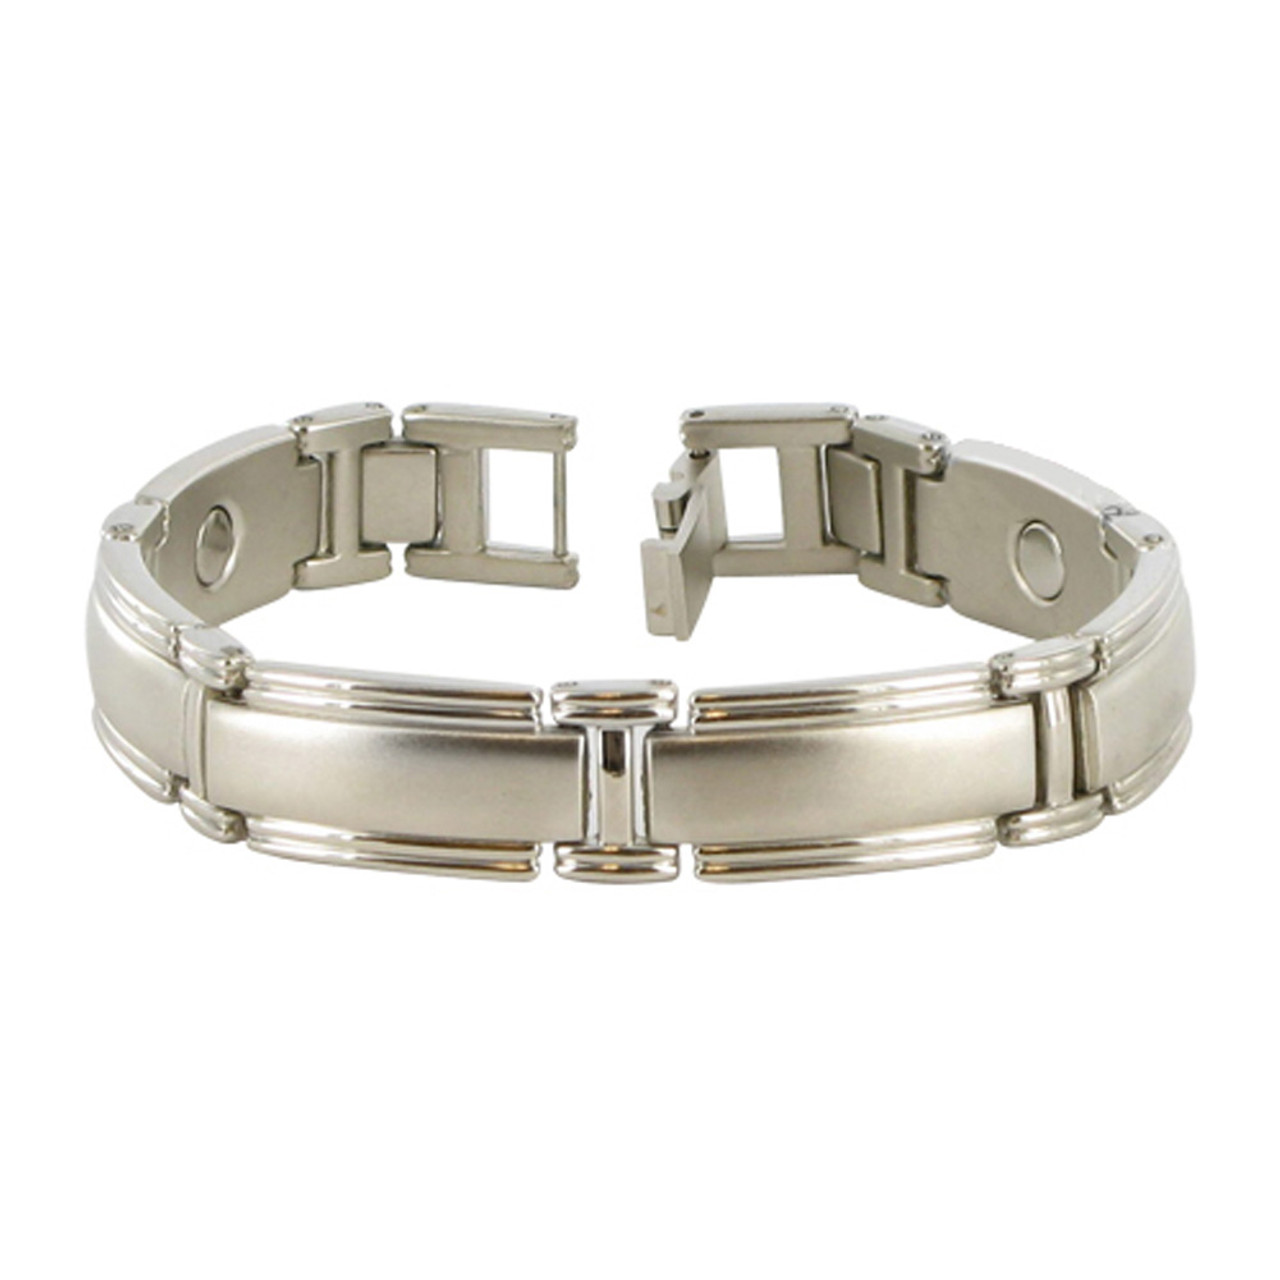 Men's Silver Tone Link Magnetic Therapy Bracelet with Fold over Clasps